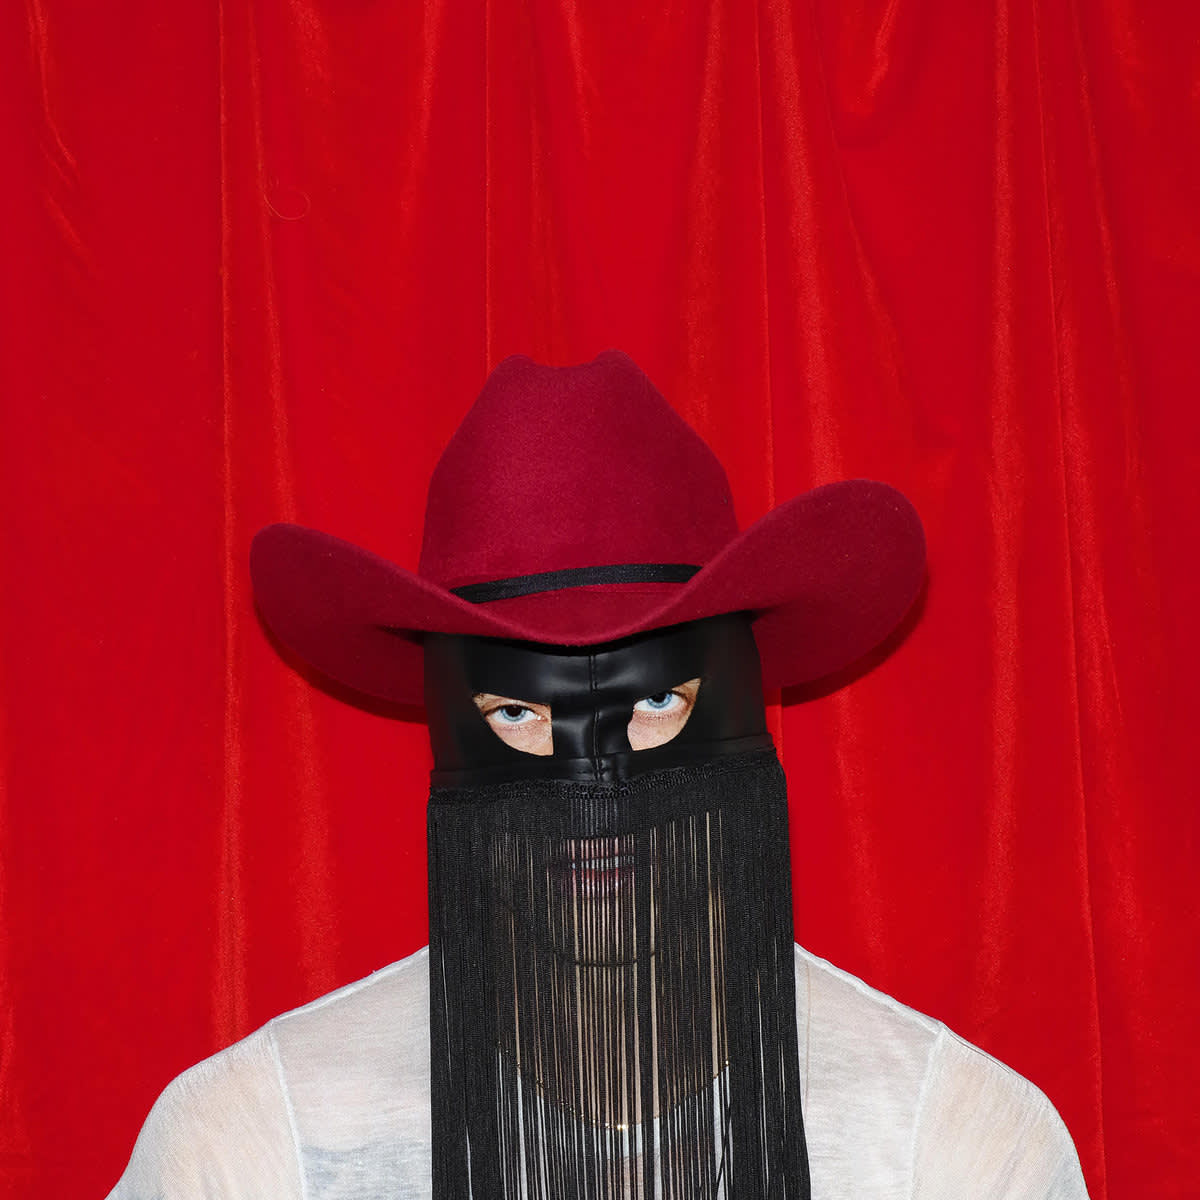 Orville Peck Album Cover